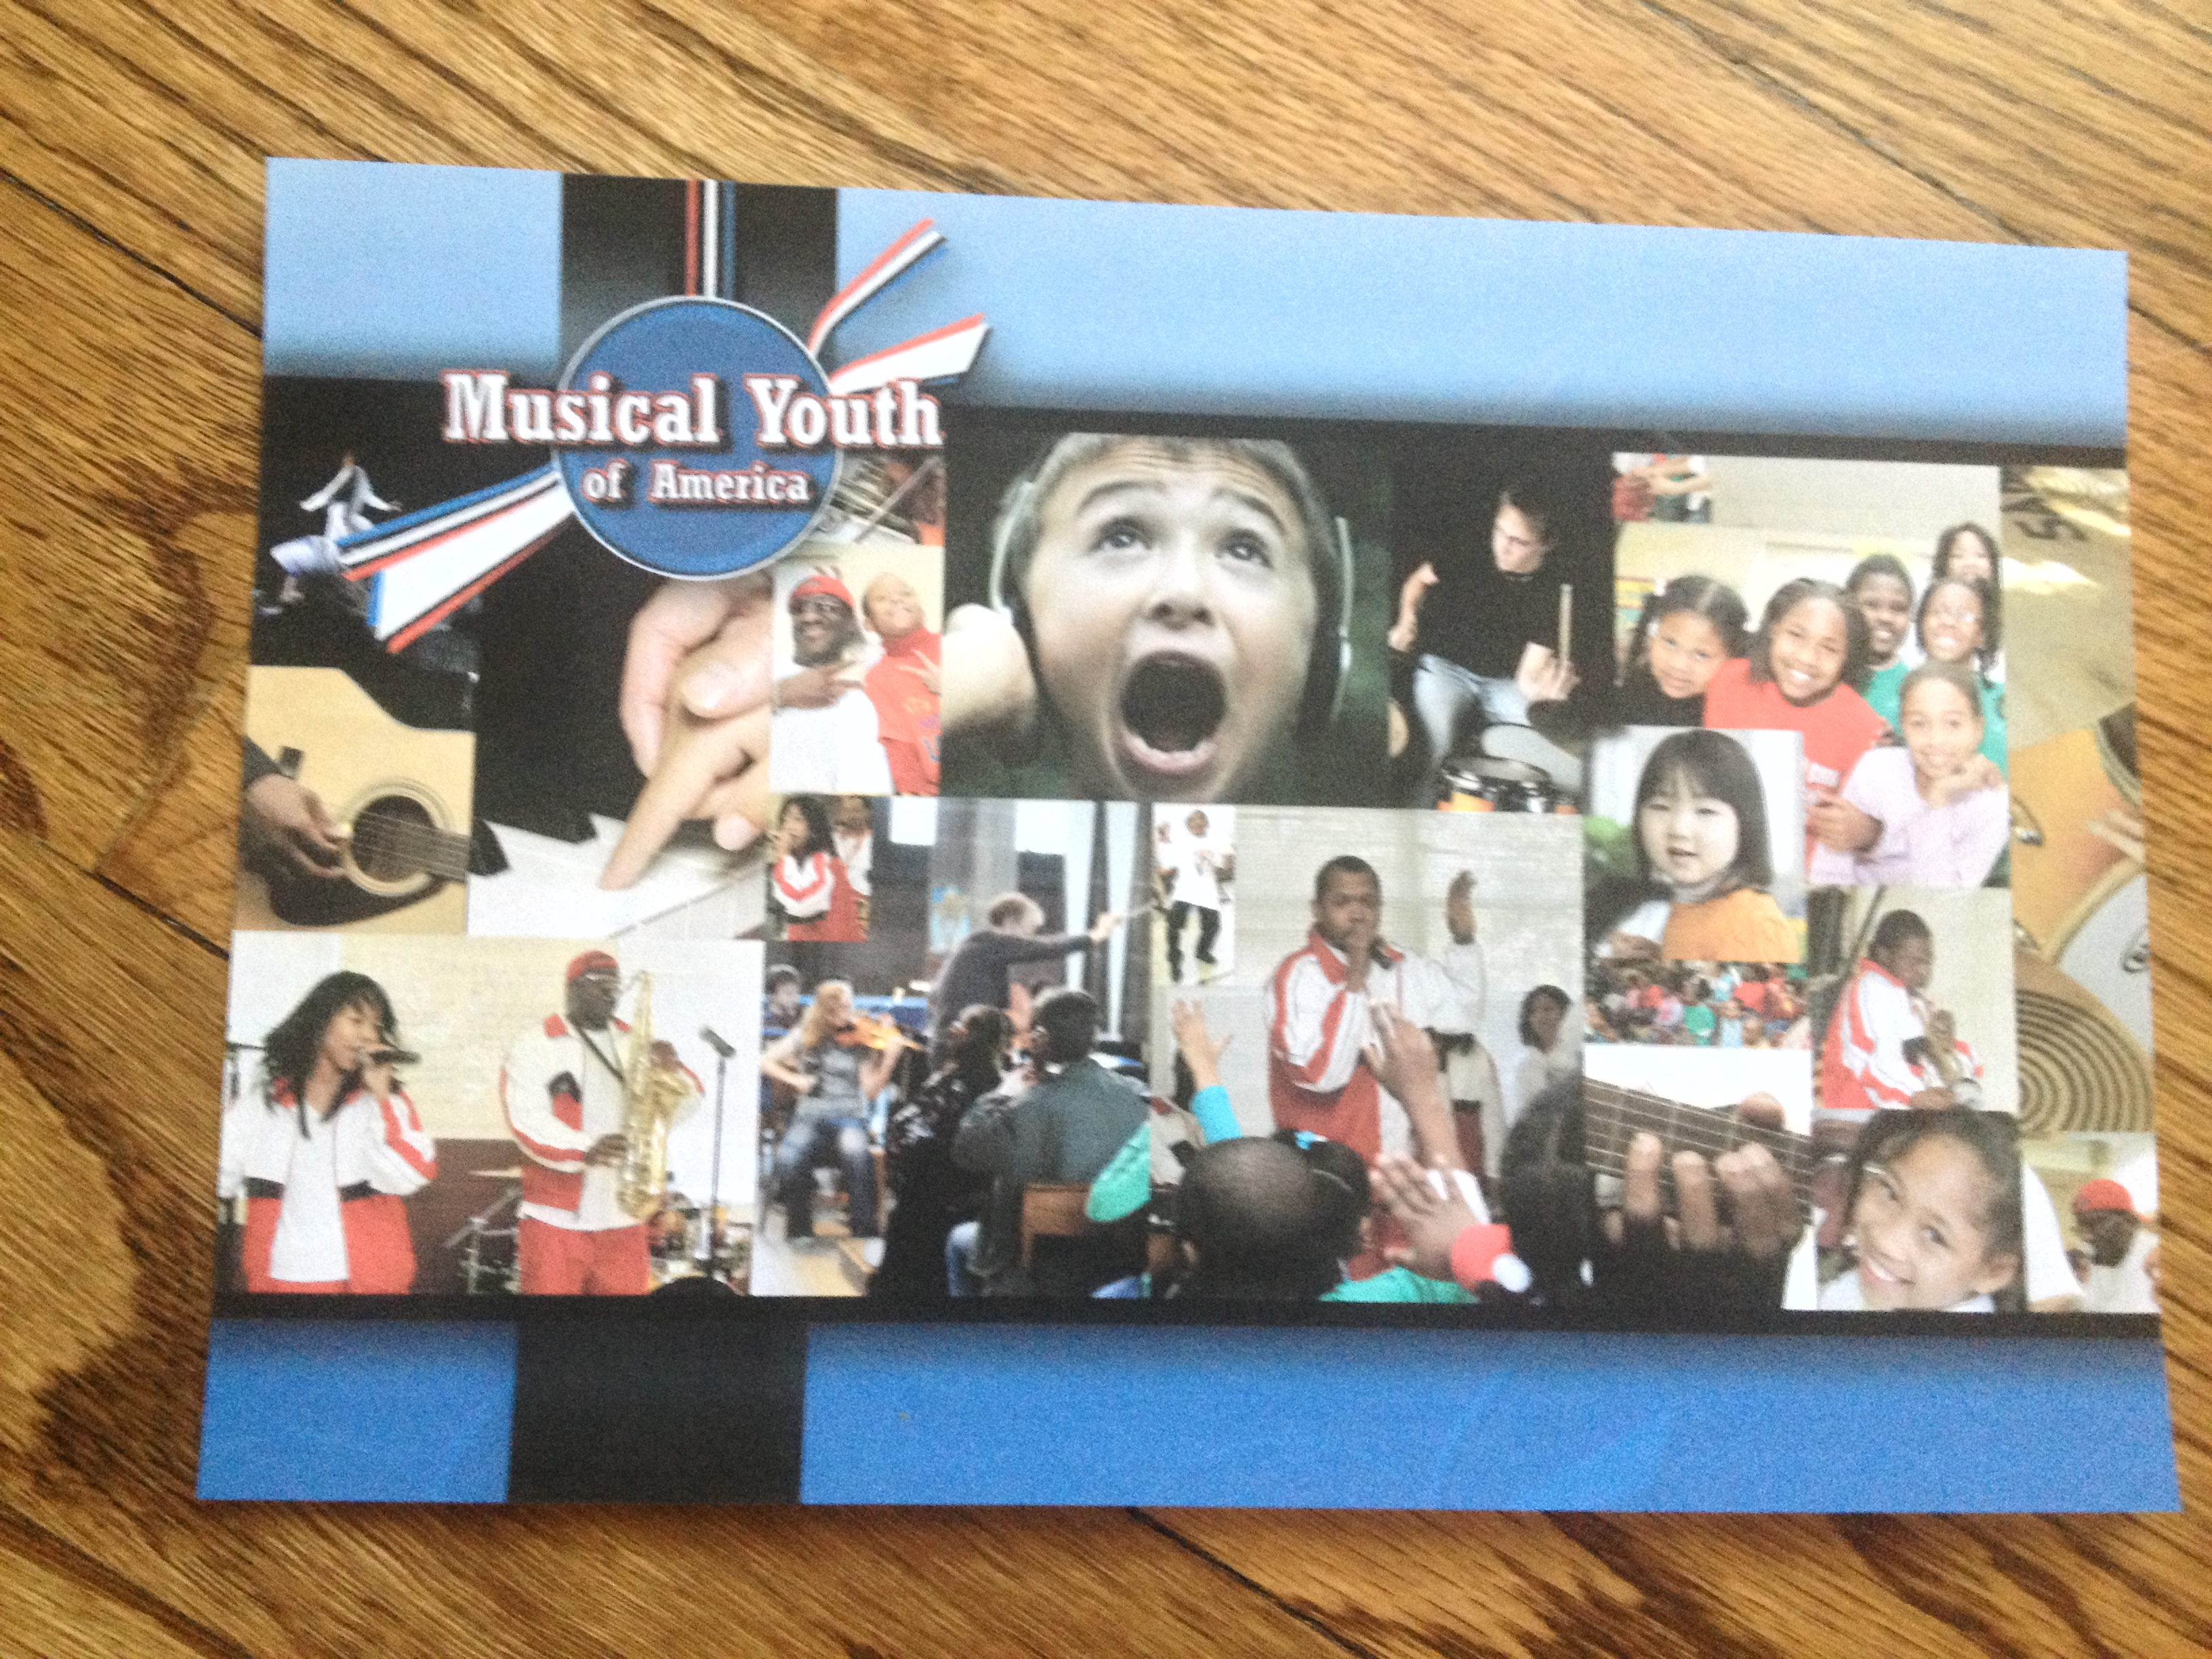 Musical Youth of America